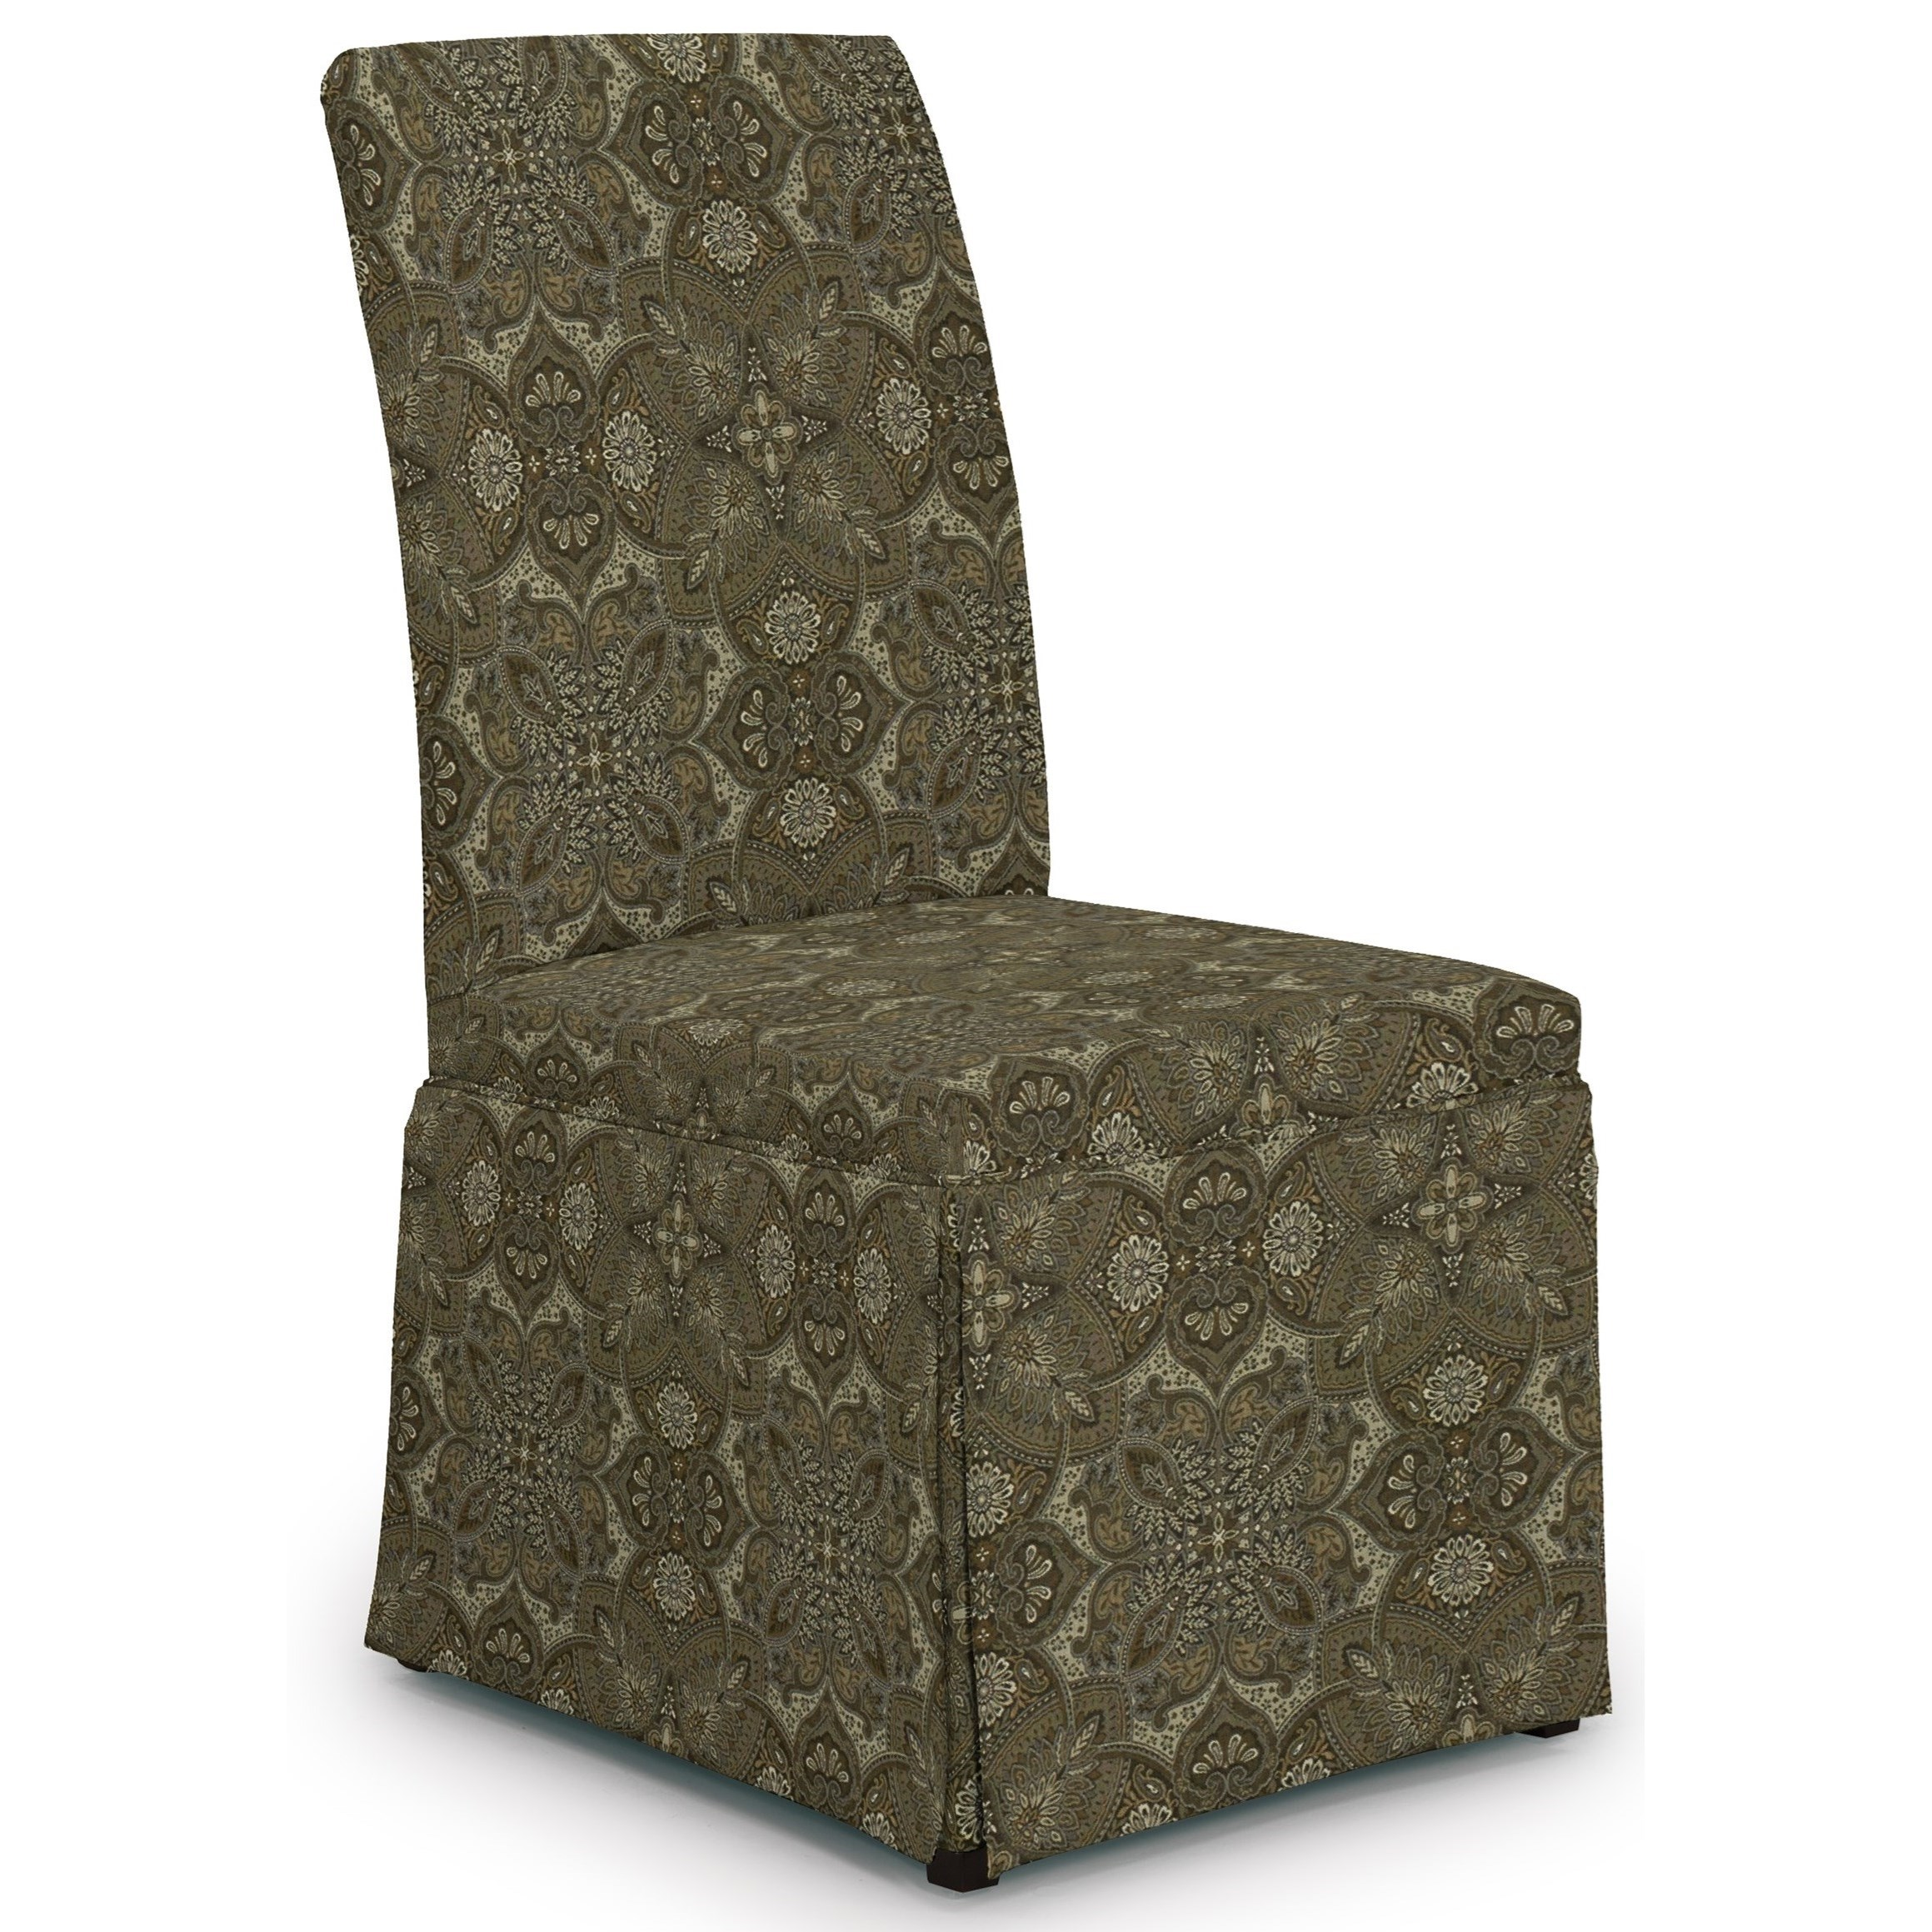 Chairs - Dining Hazel Dining Chair by Best Home Furnishings at Van Hill Furniture